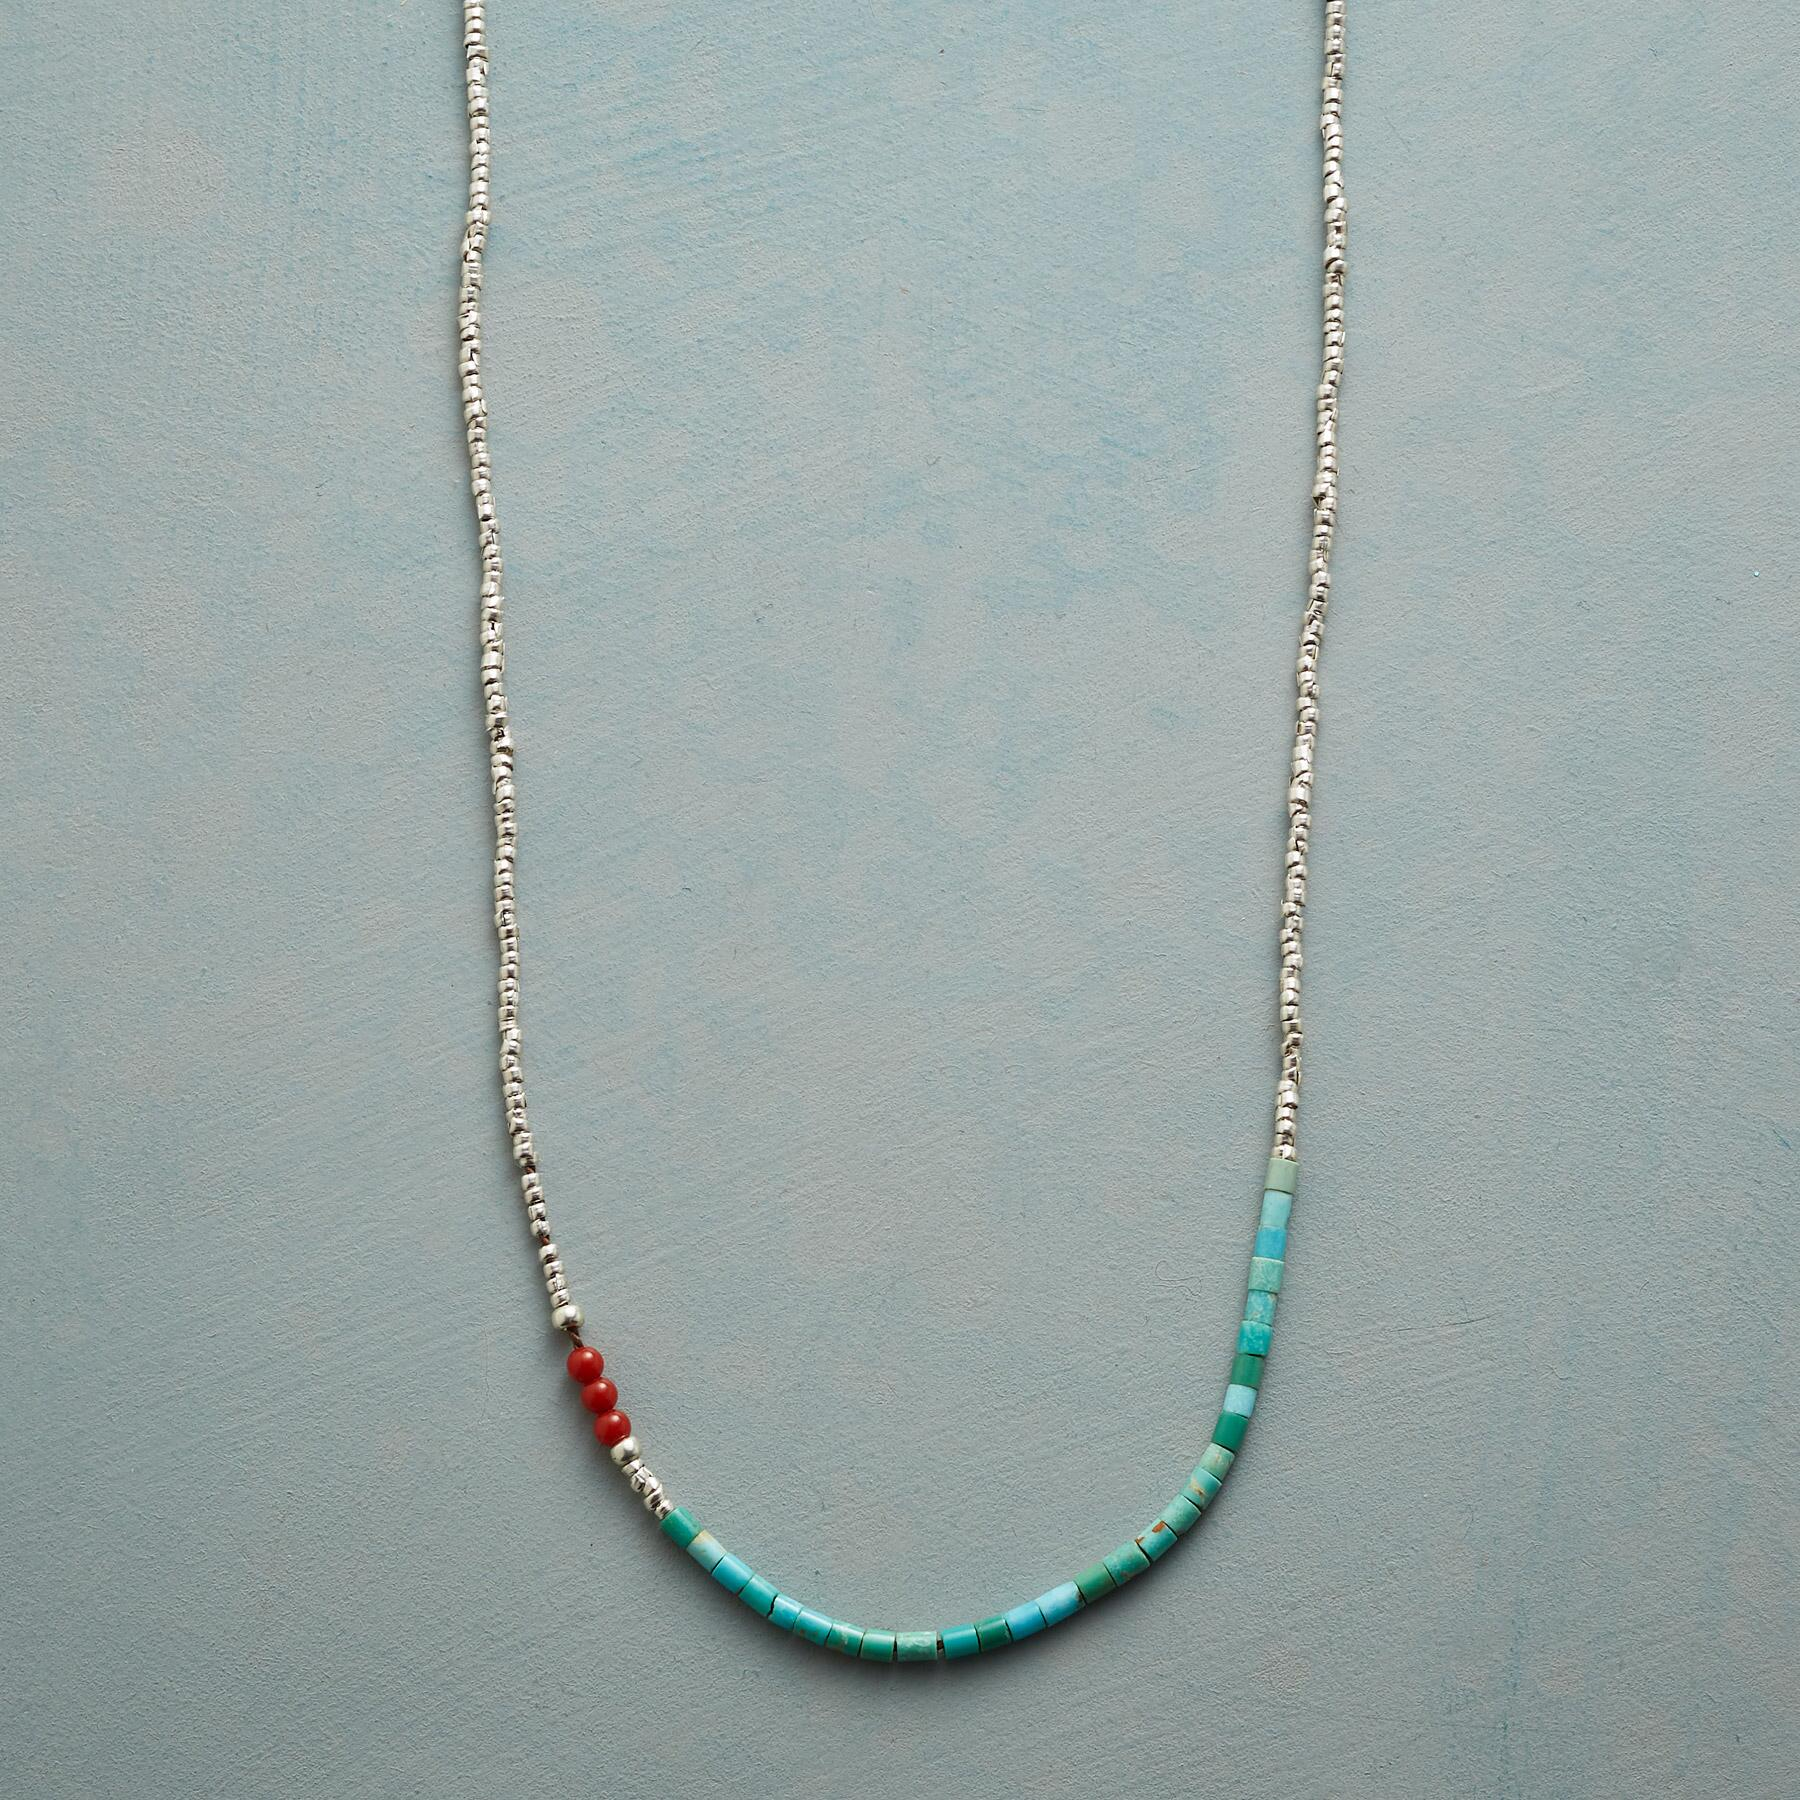 COMPLIMENTARY COLORS NECKLACE: View 1